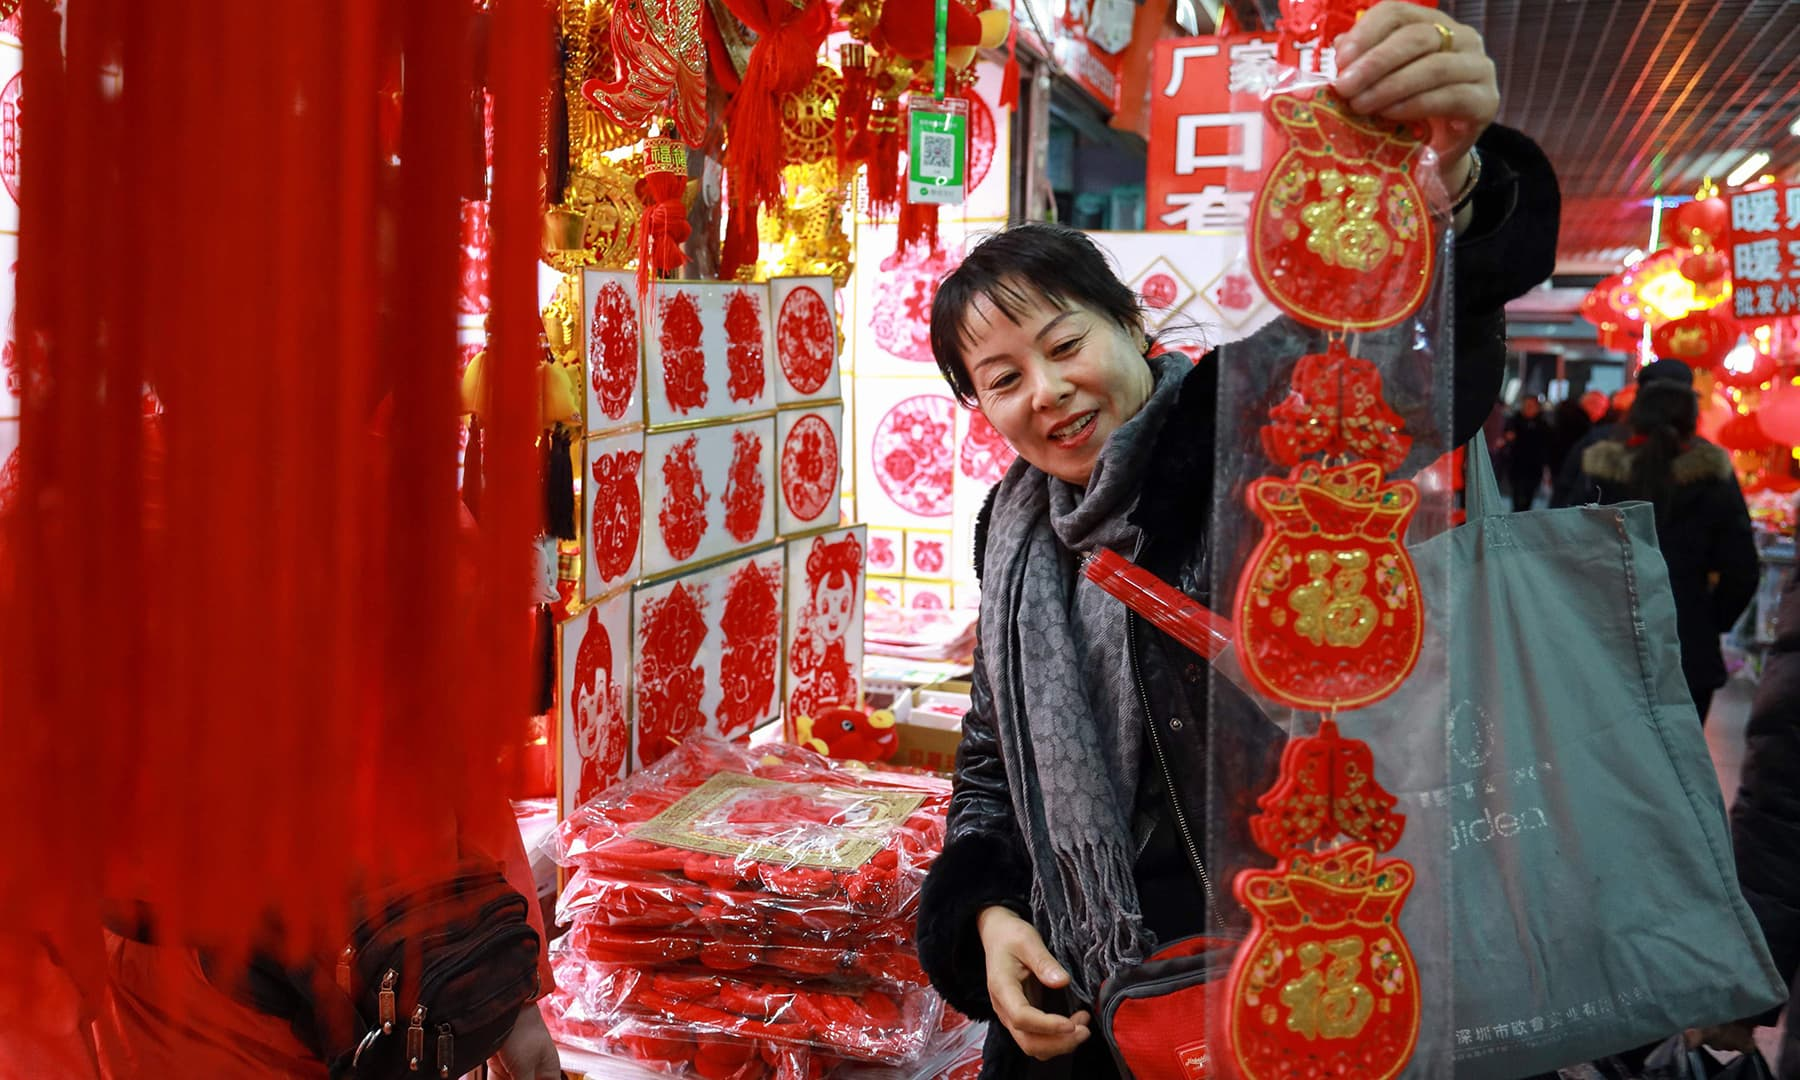 A customer buys New Year decorations at a market ahead of New Year's day in Shenyang in China's northeastern Liaoning province. — AFP